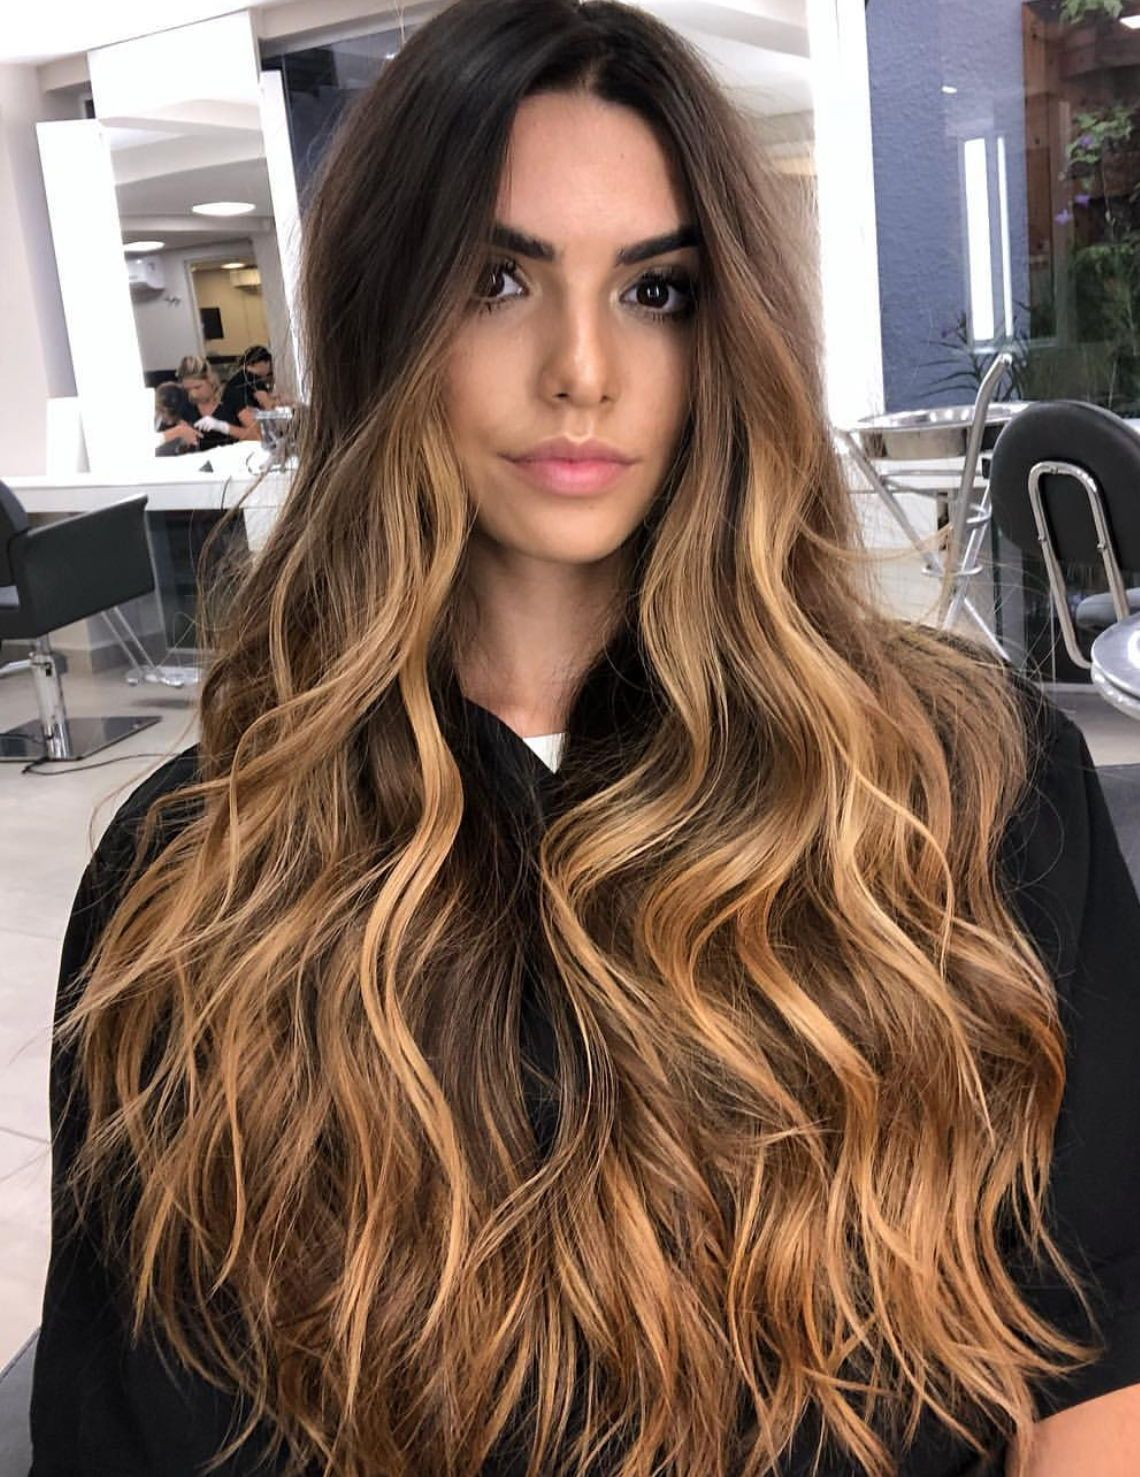 Pin by katie jenner on uu hair uu pinterest hair ombre hair and